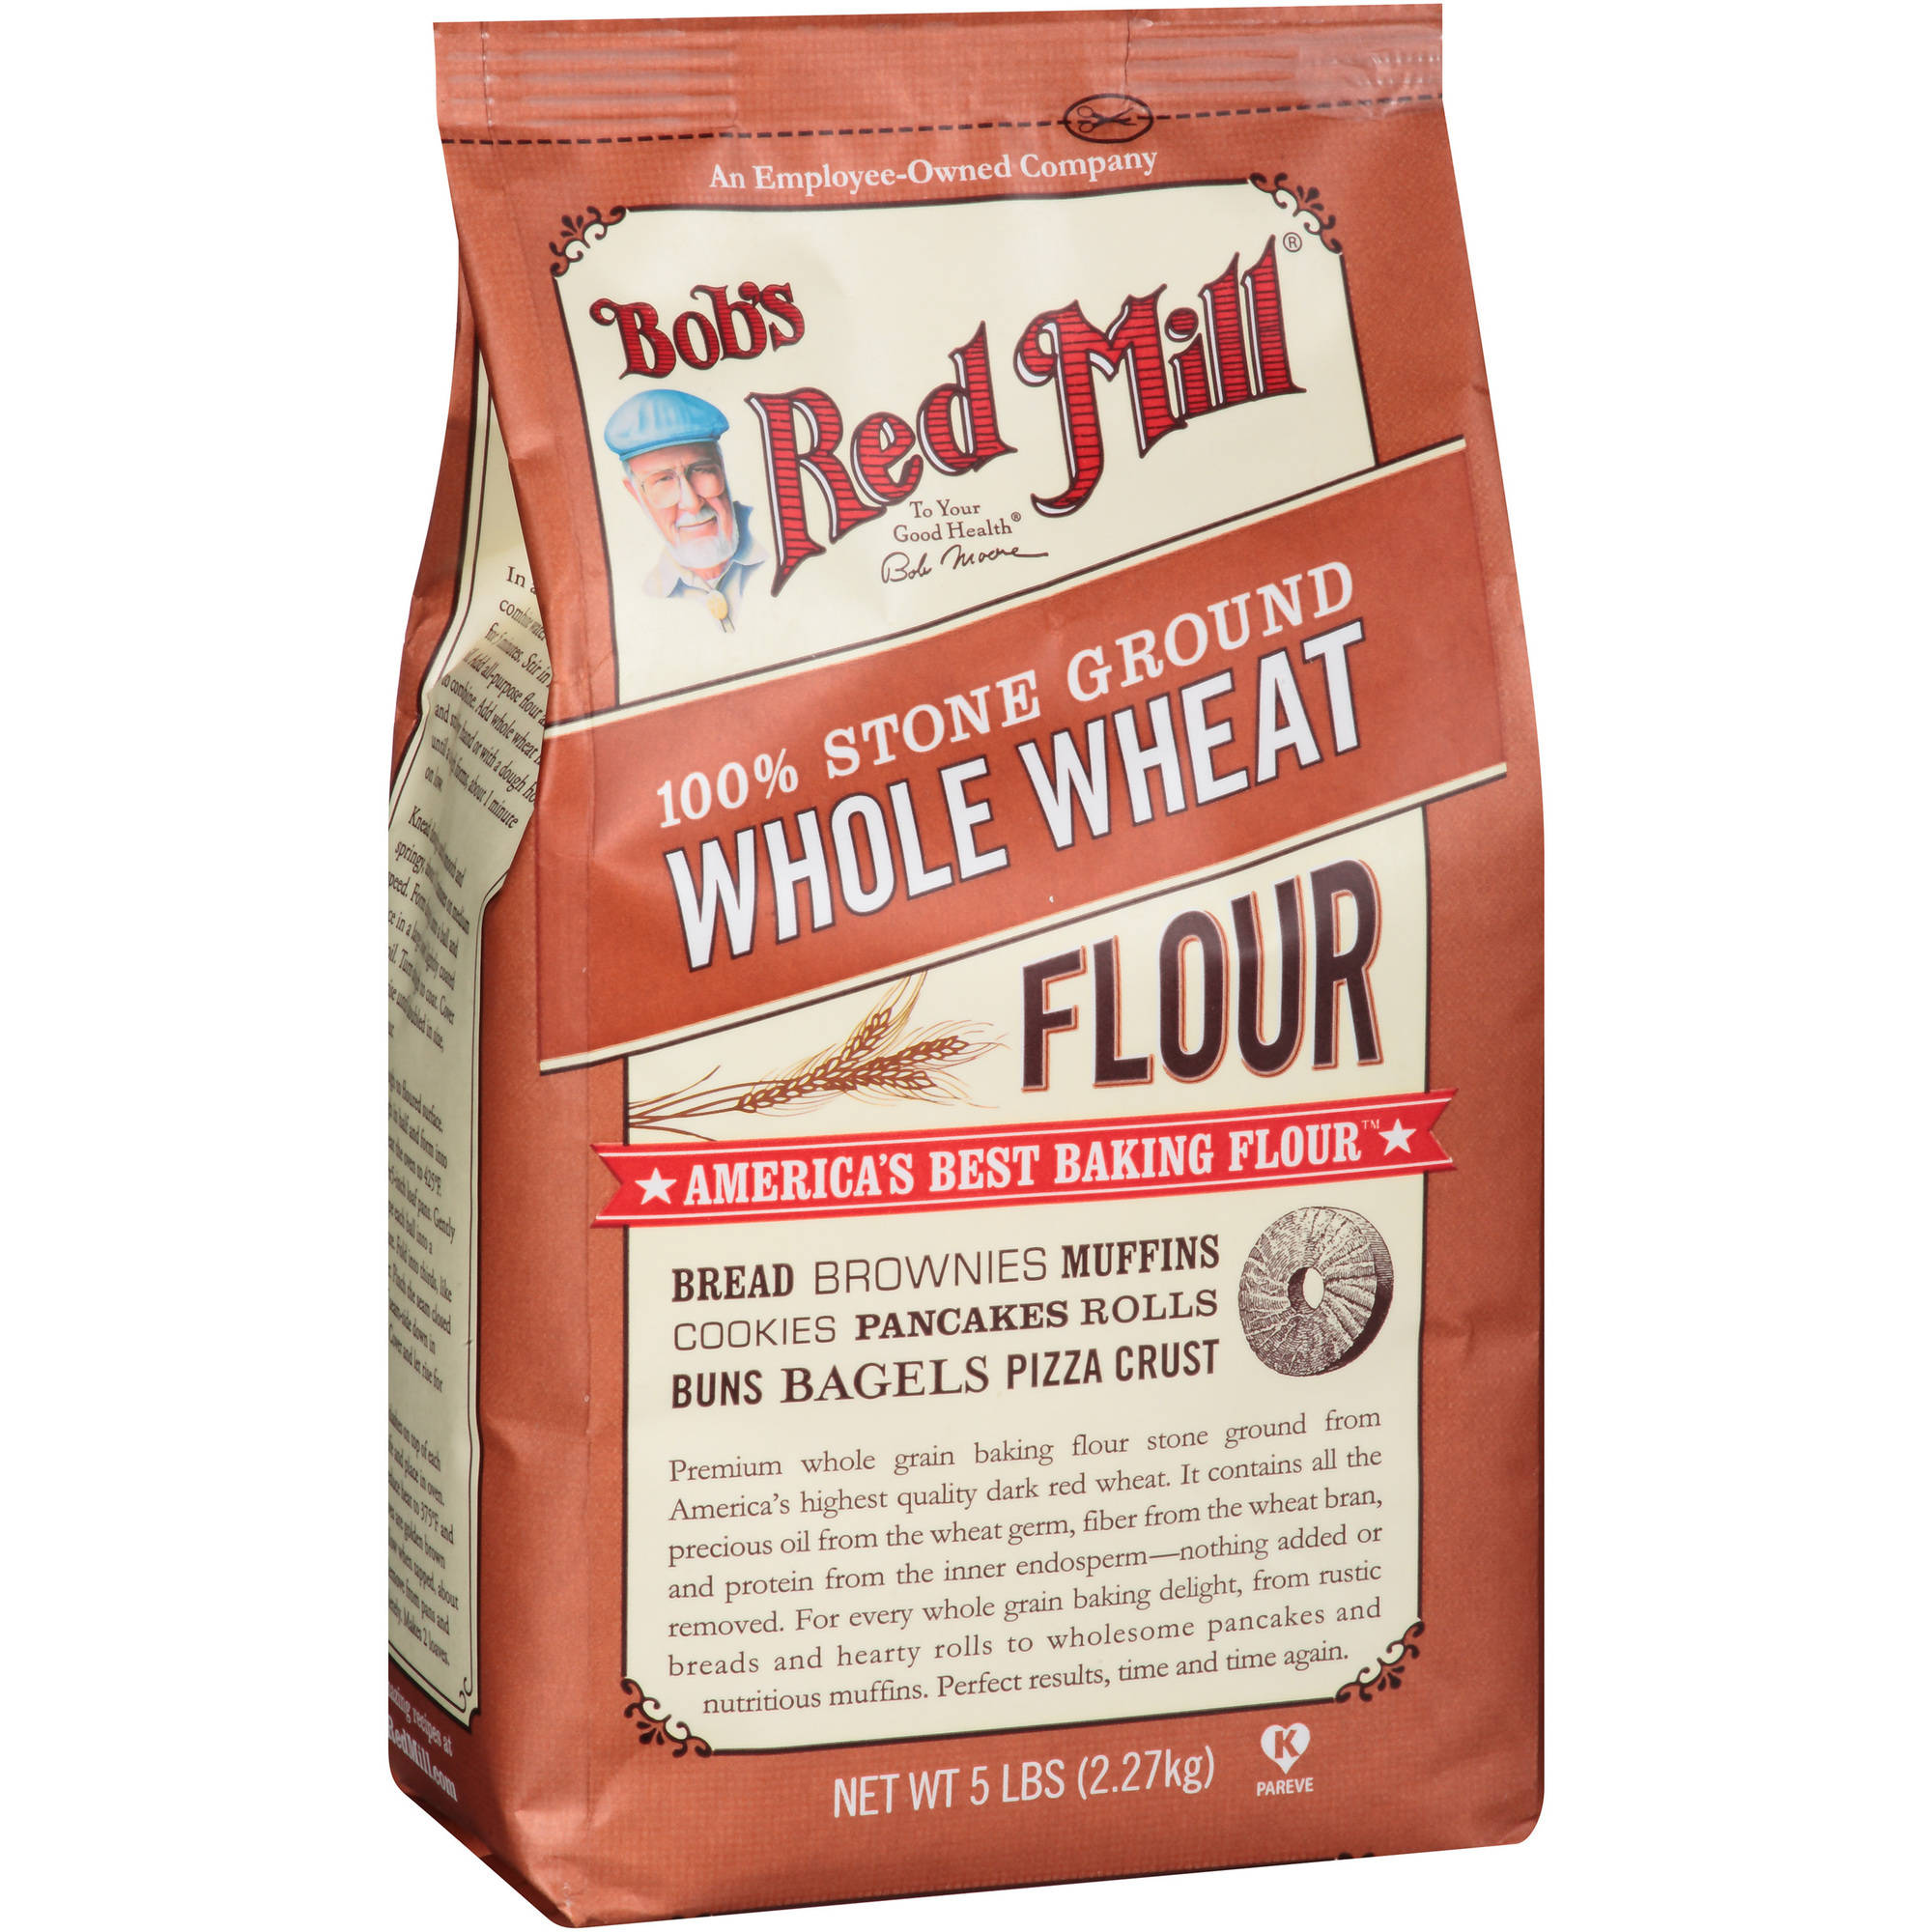 Bob's Red Mill 100% Stone Ground Whole Wheat Flour, 80 oz